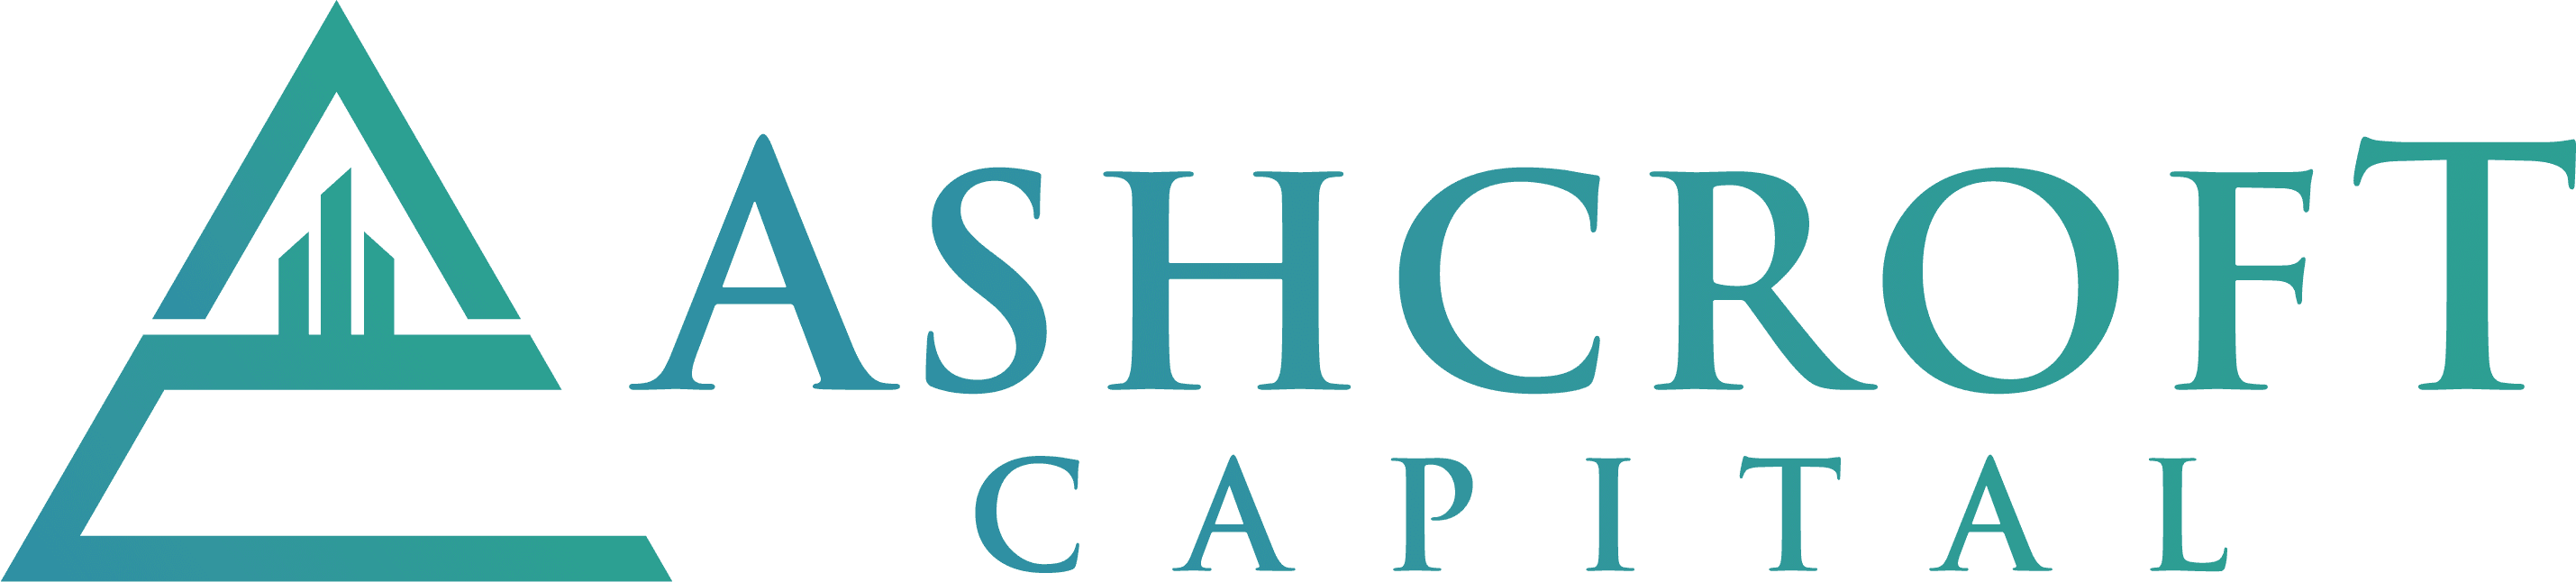 Ashcroft Capital